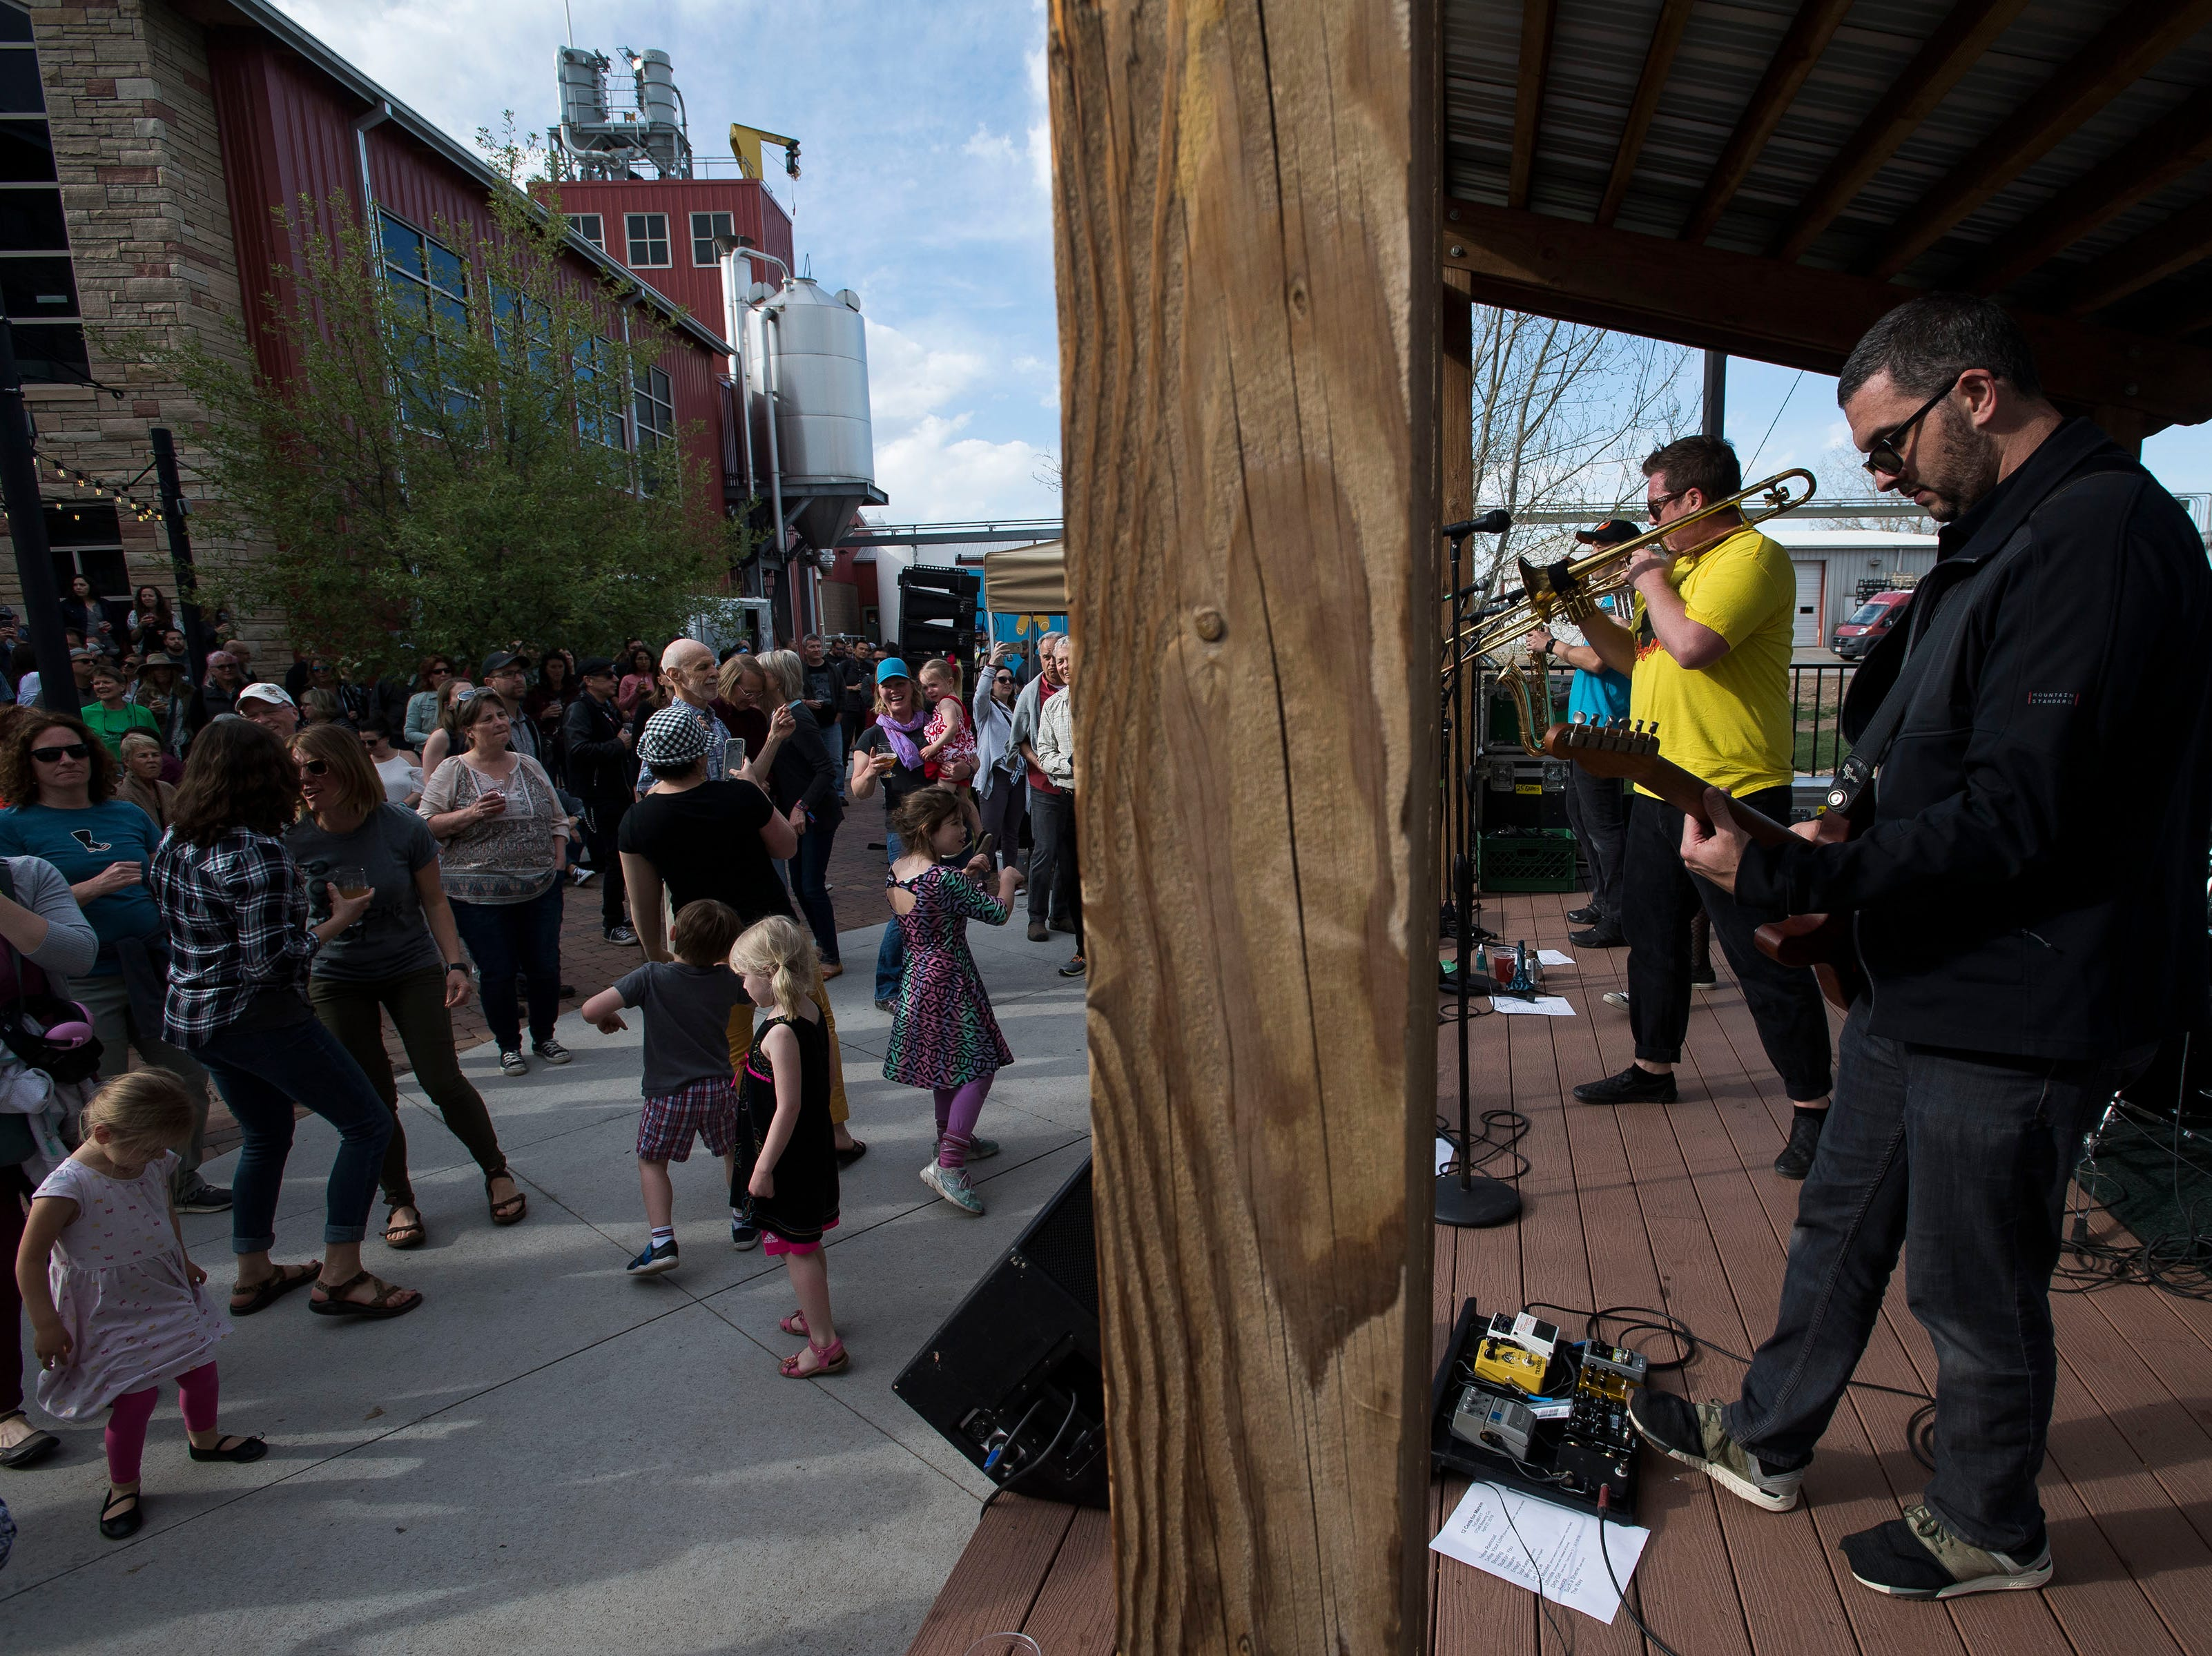 12 Cents for Martin plays the patio at Odell Brewing Co. during the FoCoMX XI music festival on Saturday, April 27, 2019, in Fort Collins, Colo.